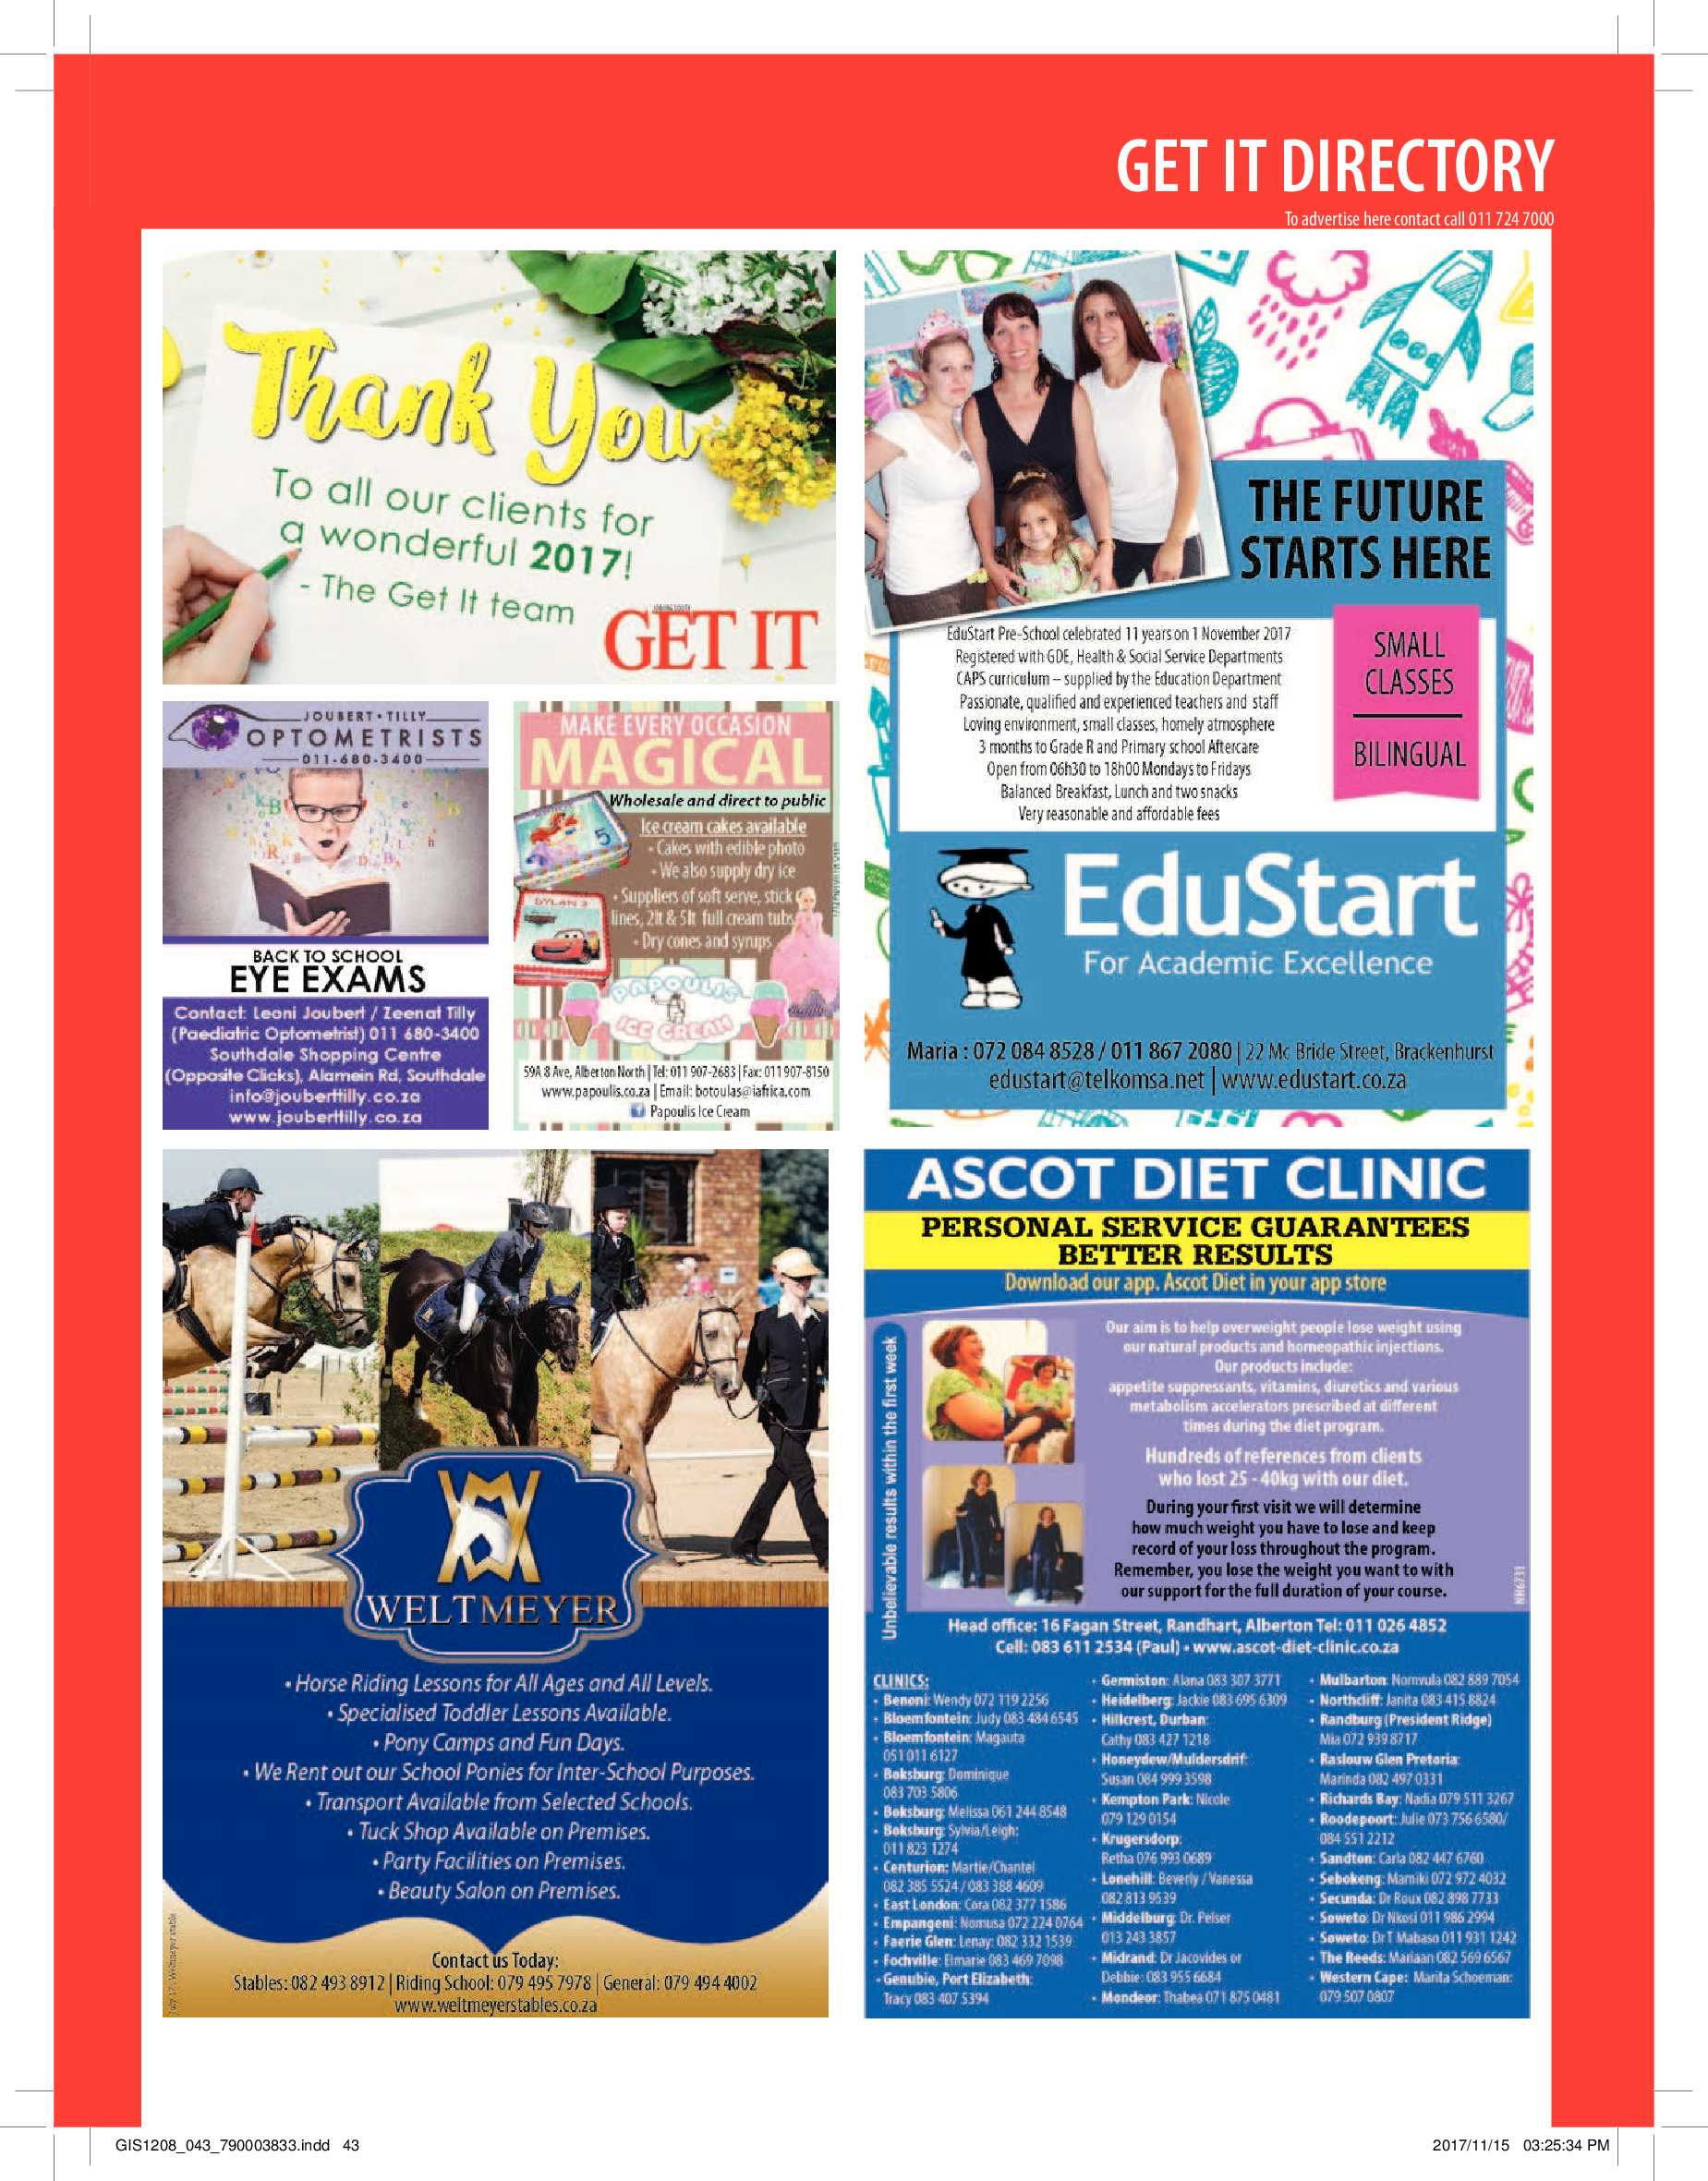 get-south-december-2017-january-2018-epapers-page-43